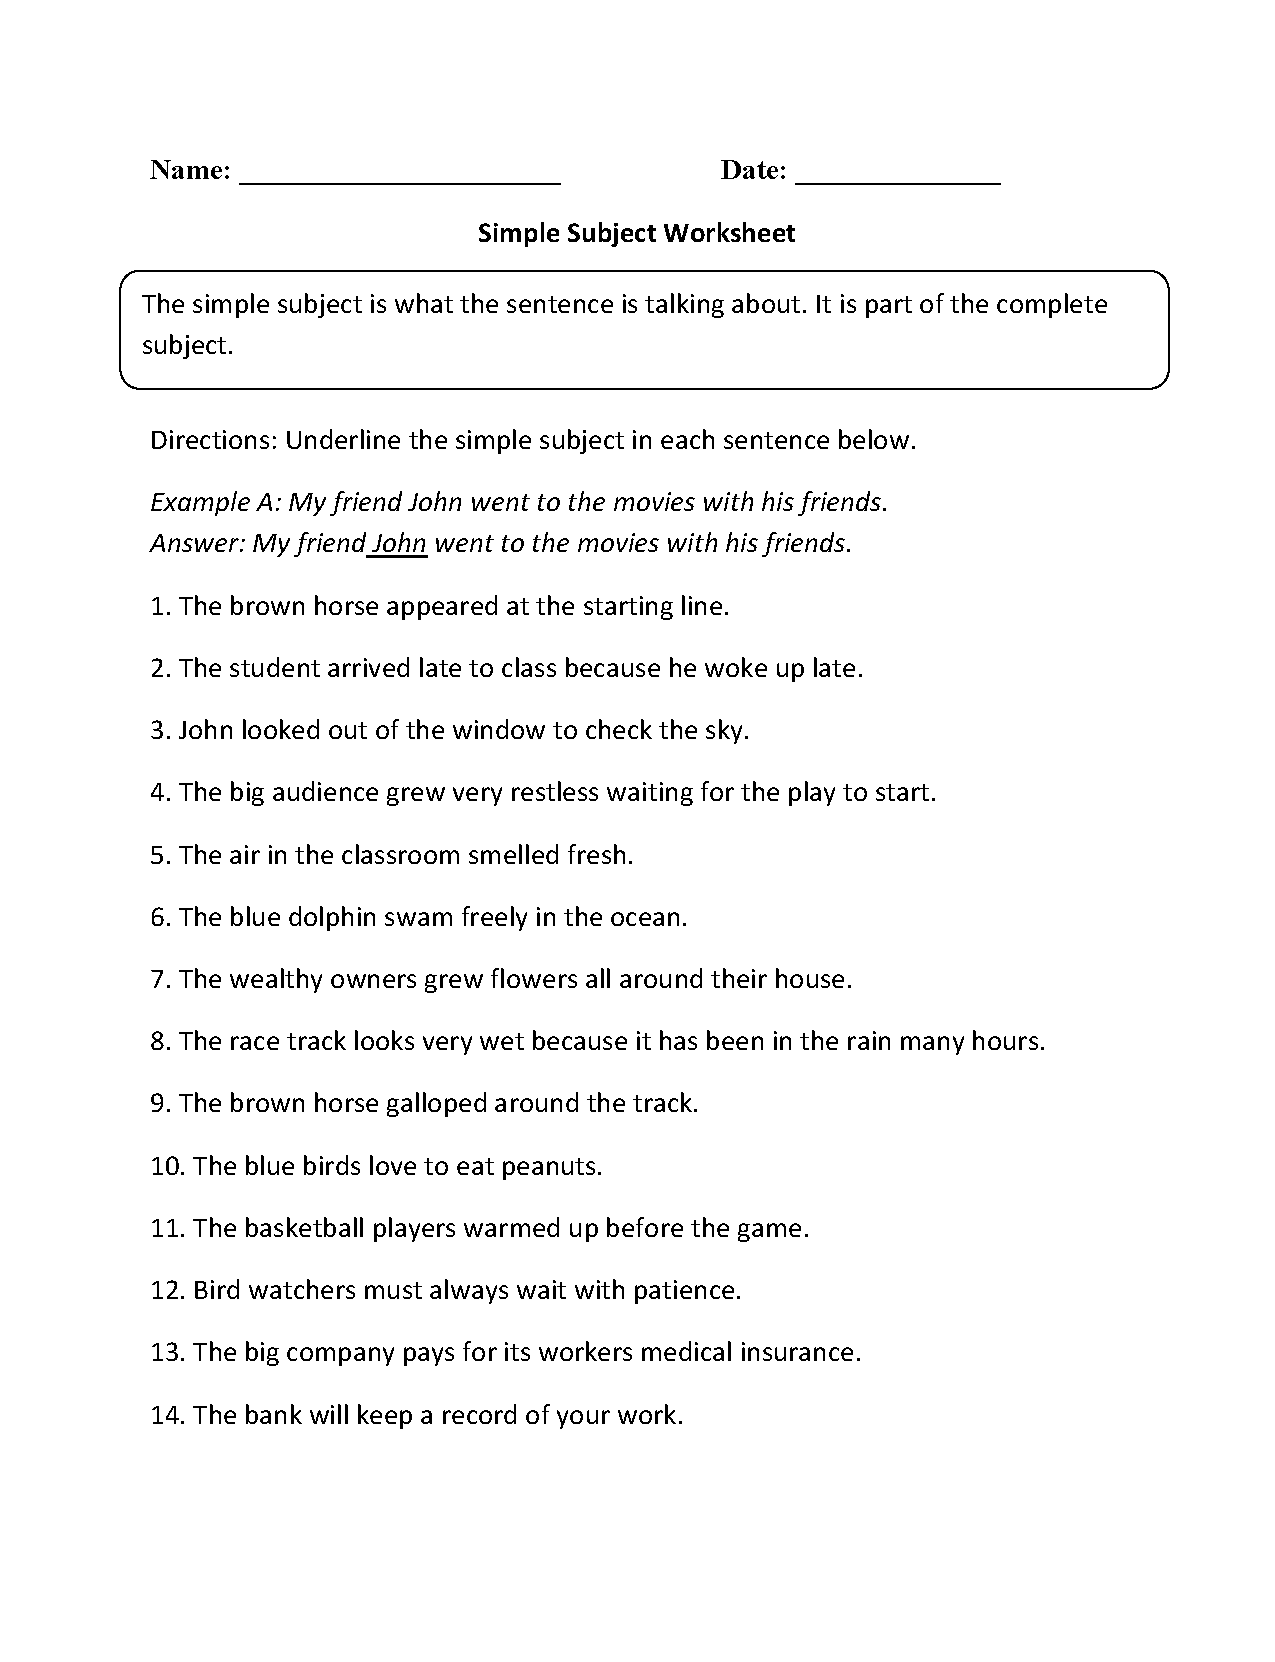 Simple Subject Worksheet Englishlinx Board – Predicate Nominative Worksheet